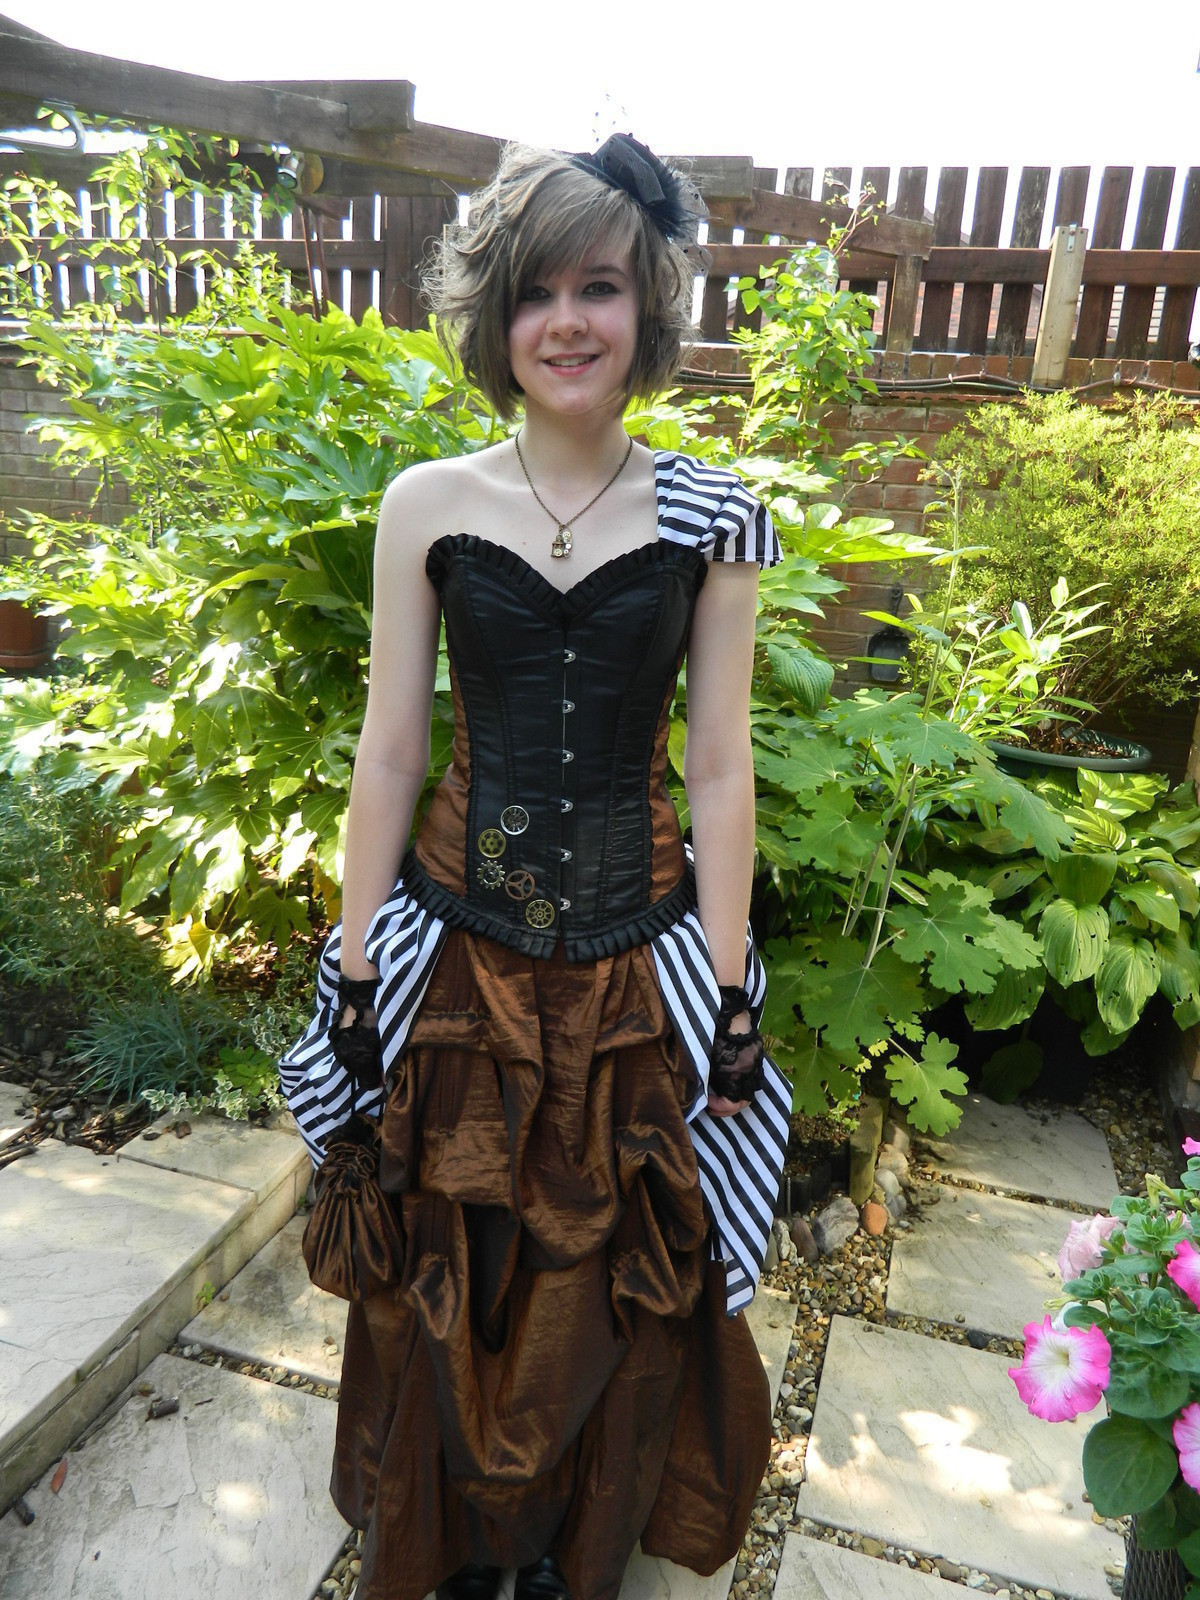 Best ideas about DIY Steampunk Costume . Save or Pin Steampunk Prom Dress · How To Sew A Prom Dress · Sewing on Now.